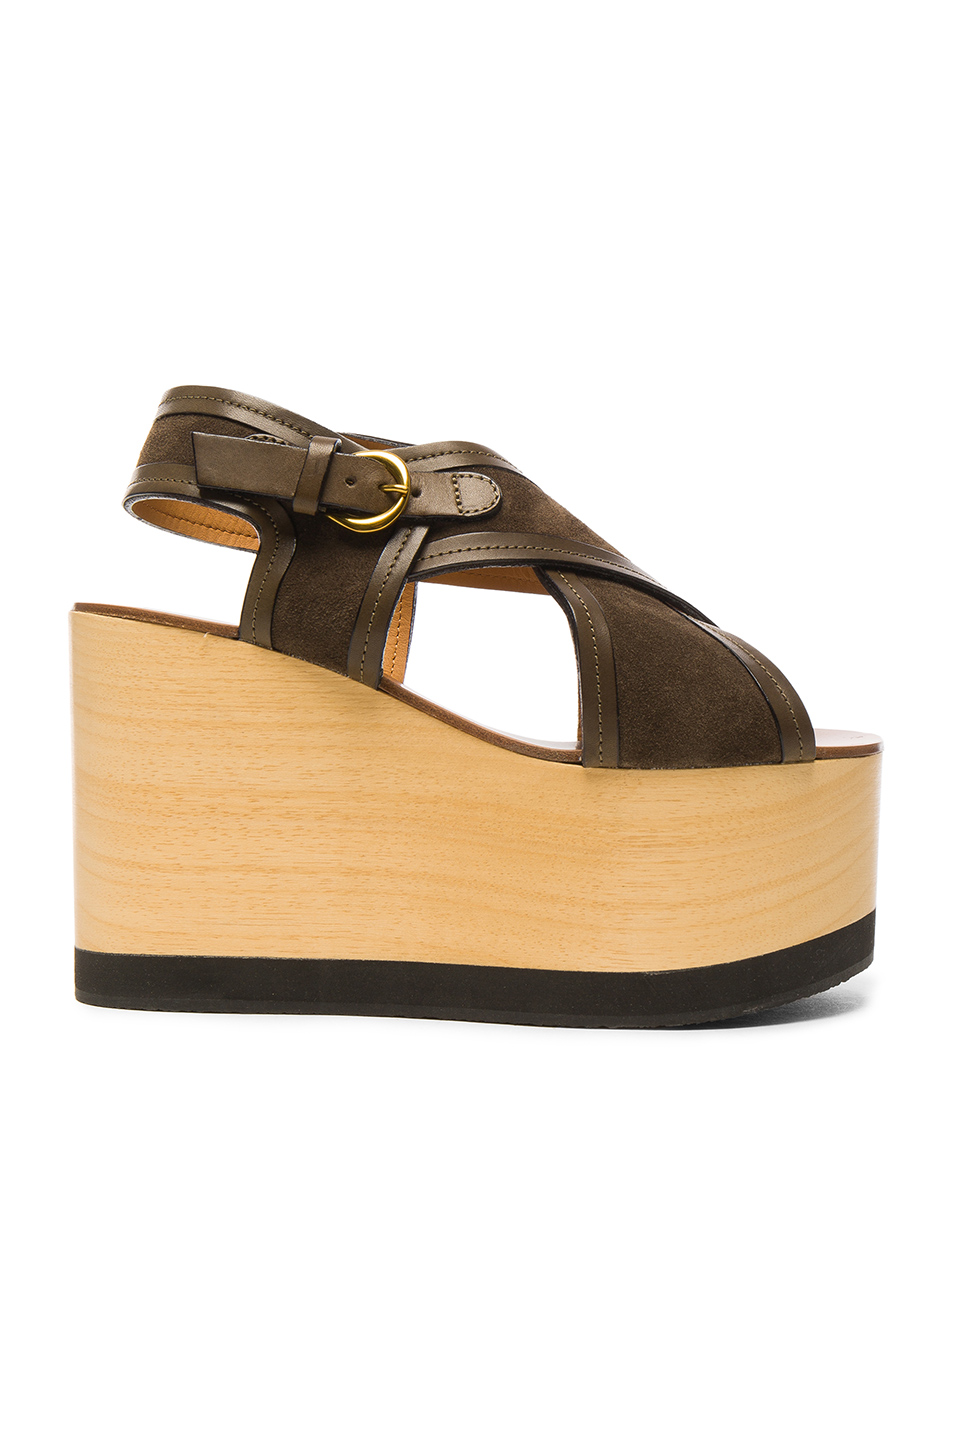 Isabel Marant Suede Zlova Wedge Sandals in Brown